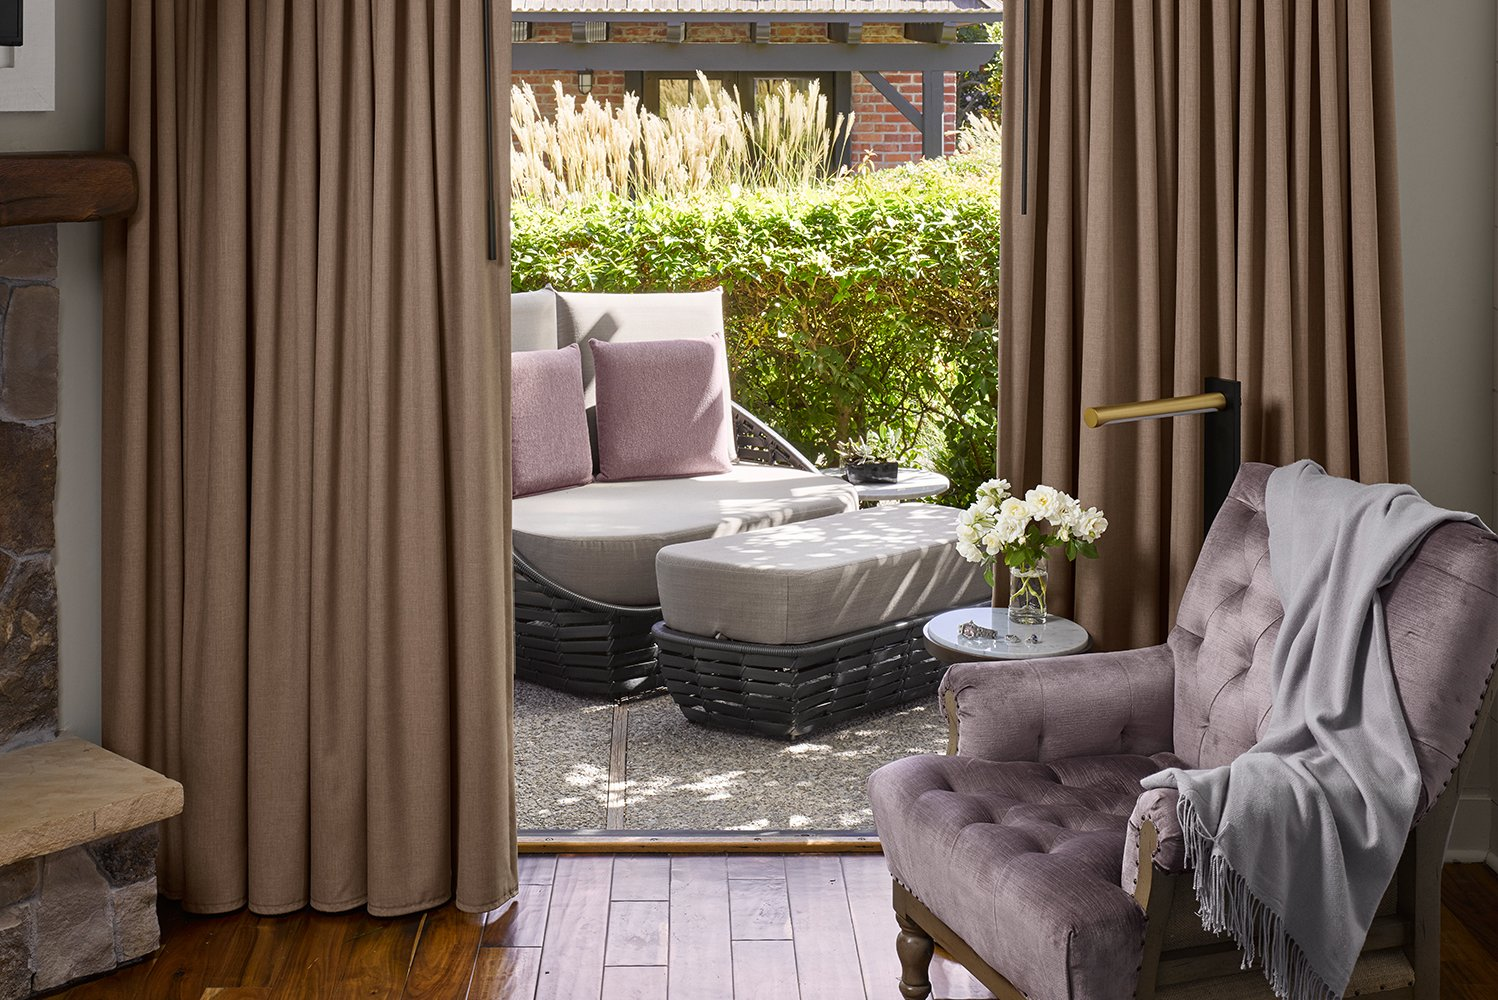 Vintage House's interiors use a color palette including gray and lavender, with subtle nods to the property's location.